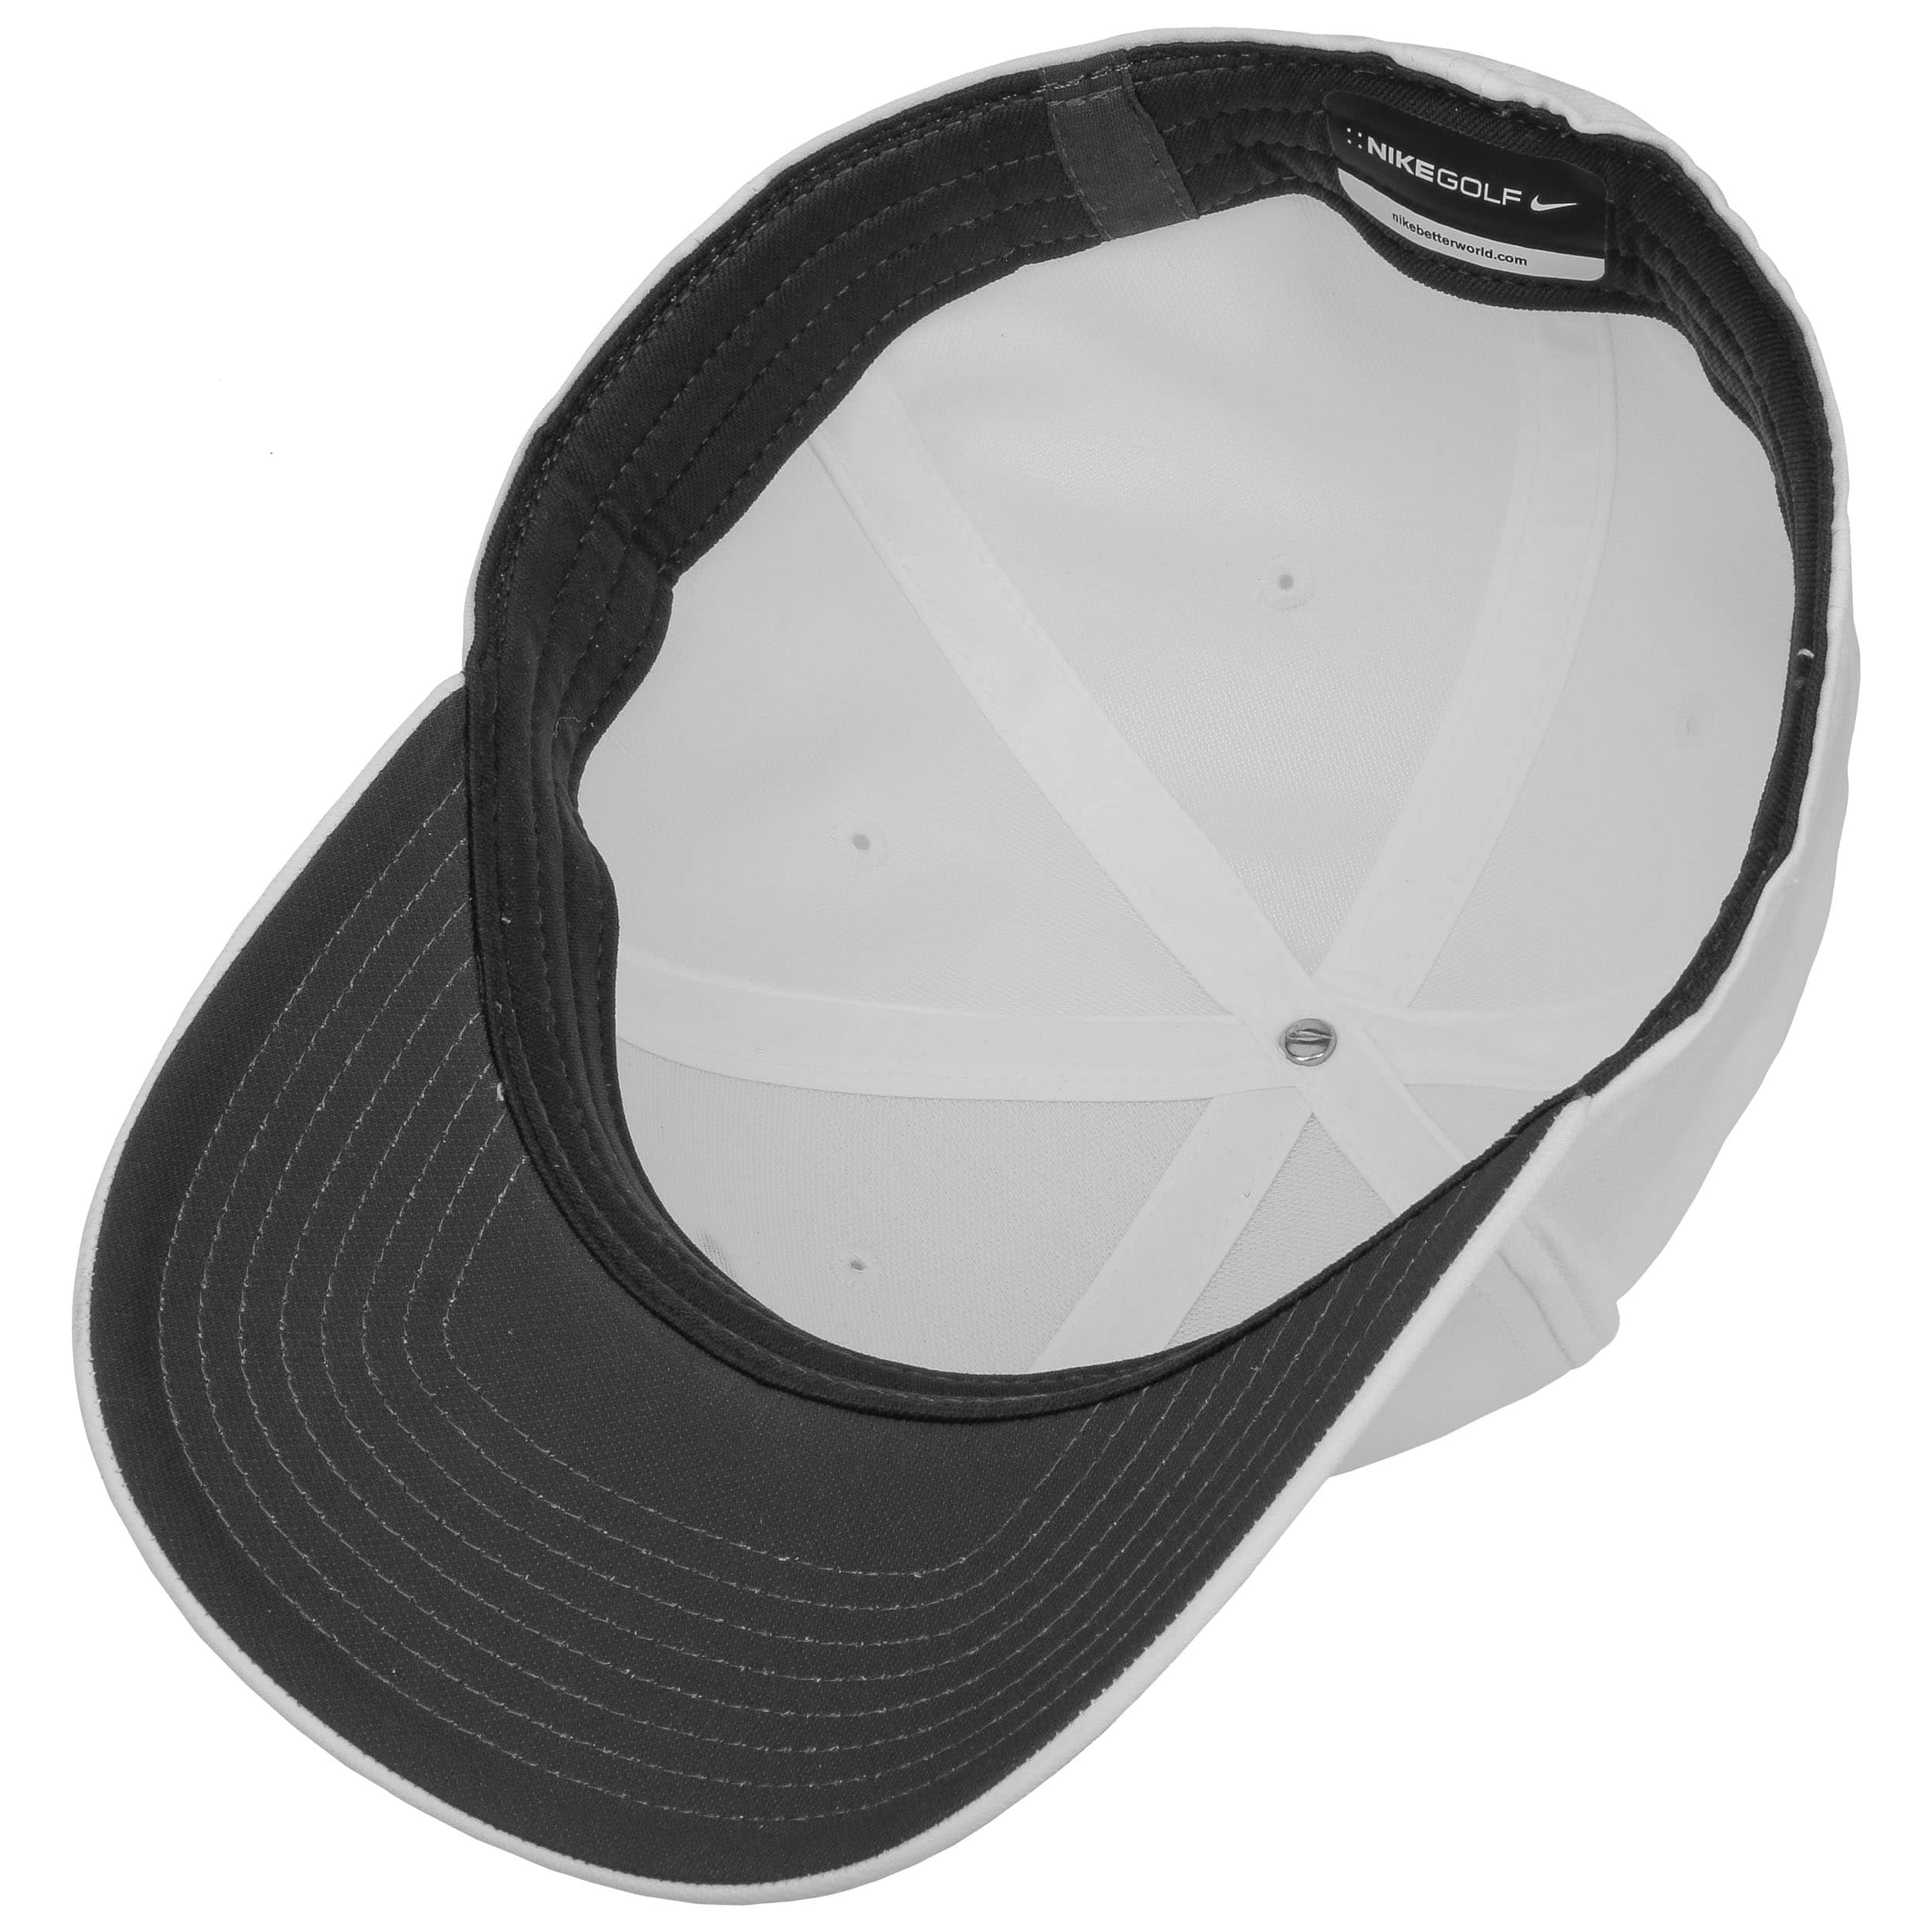 9dffb6e370b ... Golf Classic 99 Performance Cap by Nike - white 2 ...